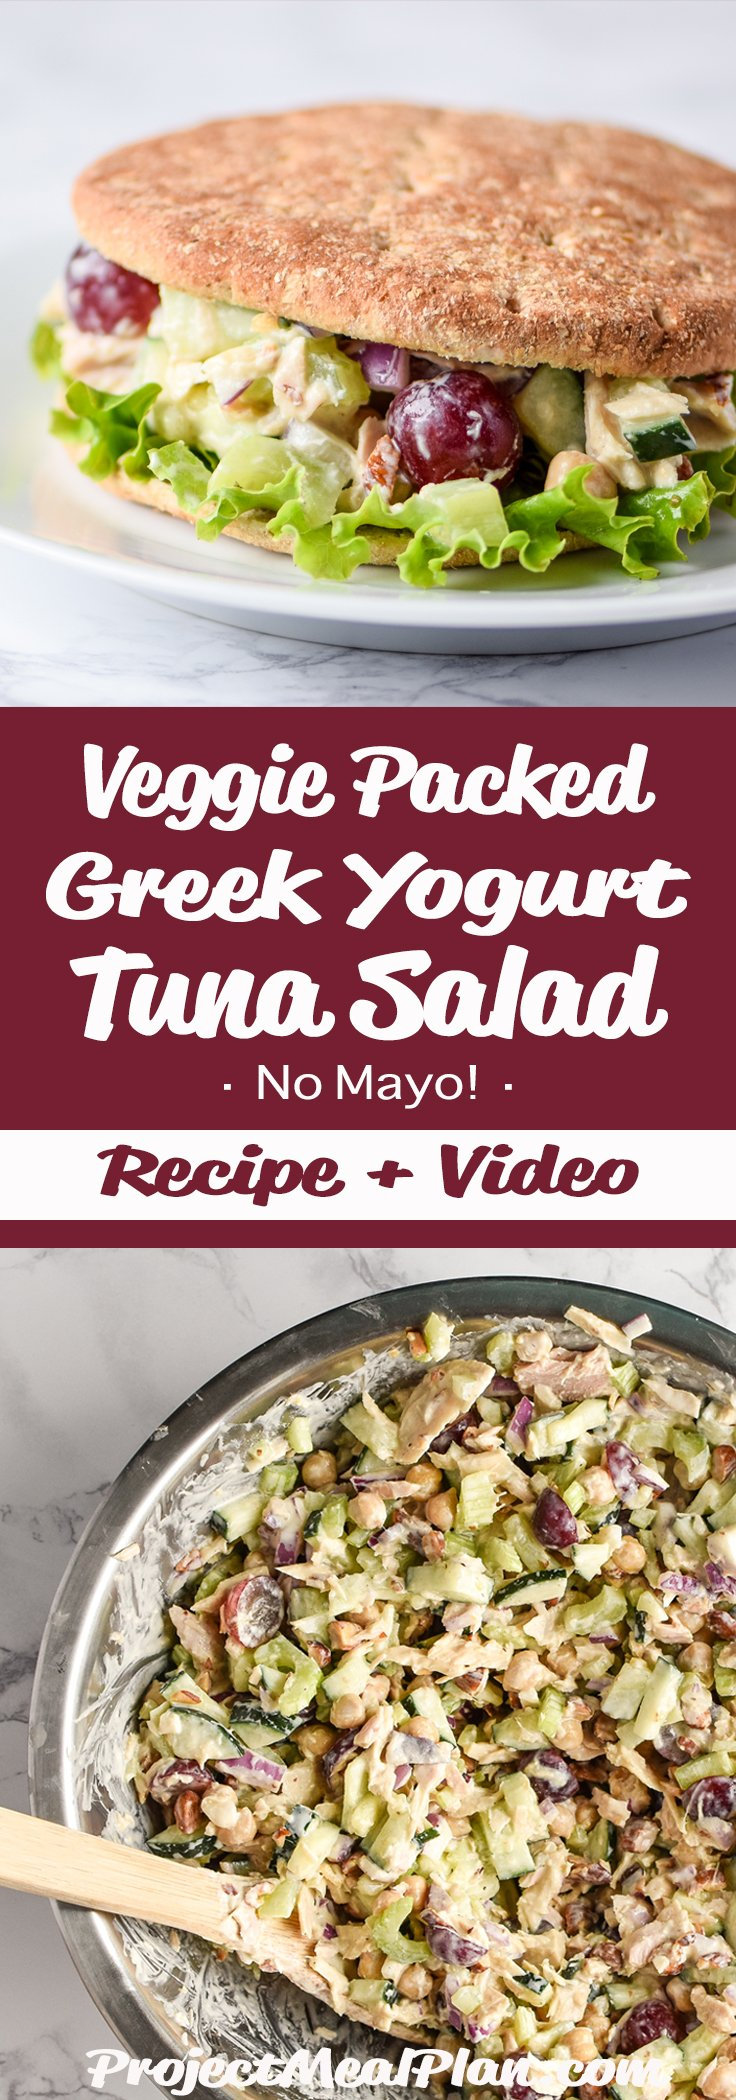 Veggie-Packed Greek Yogurt Tuna Salad (No-Mayo!) recipe - Full of tuna, chickpeas, and greek yogurt for a high protein make-ahead lunch! - ProjectMealPlan.com